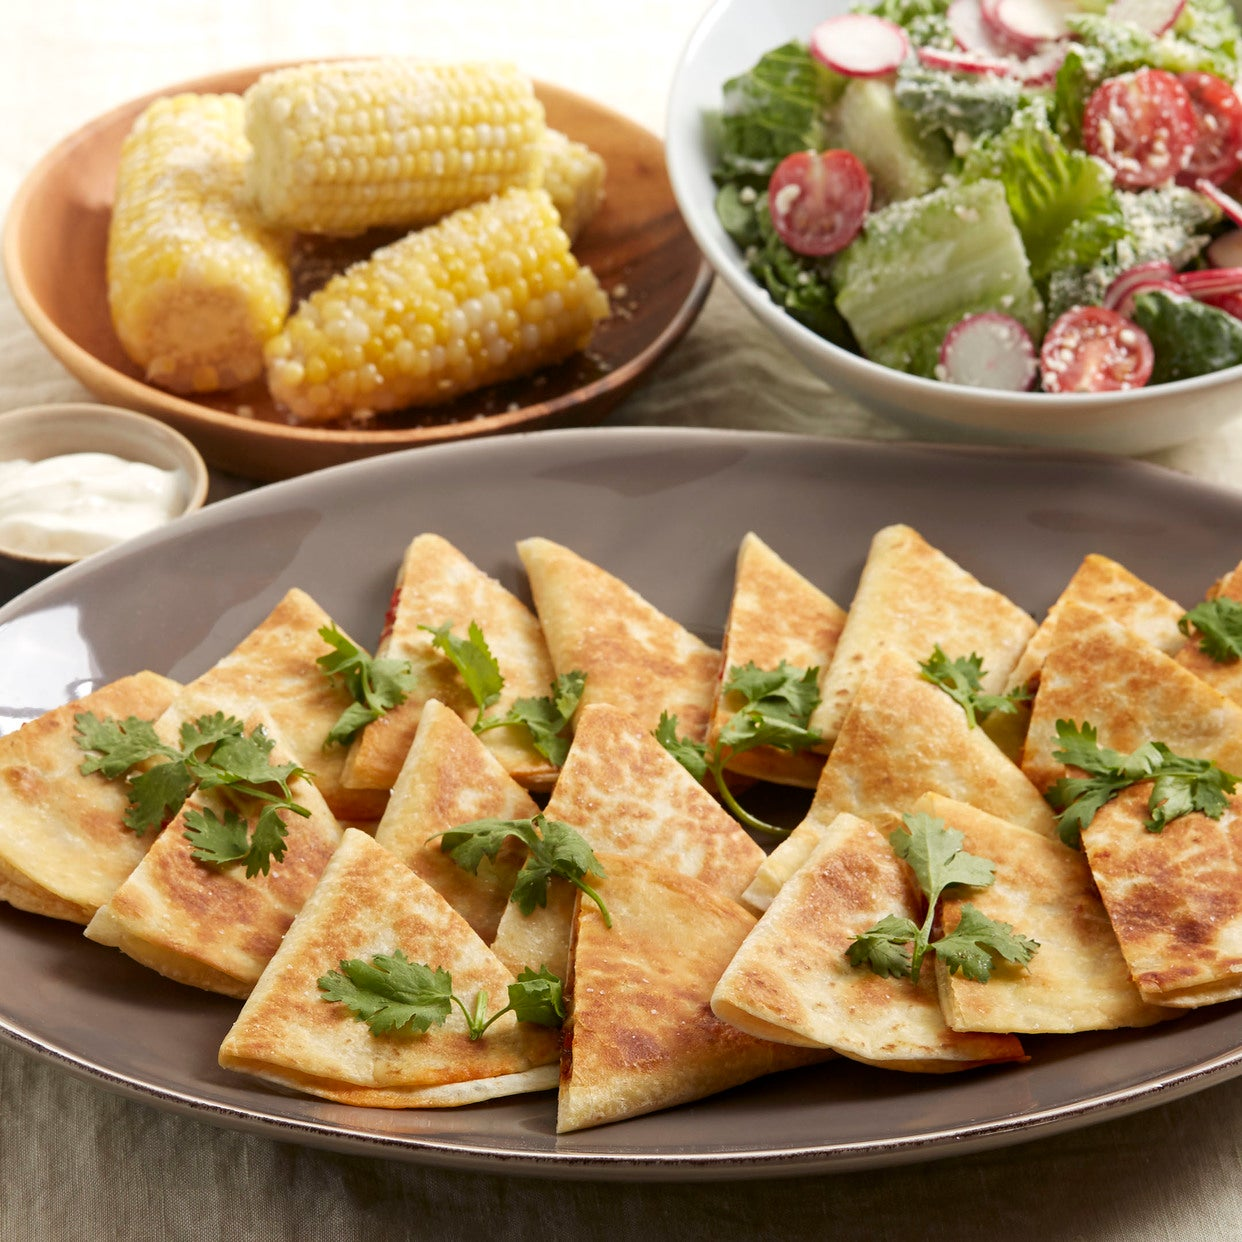 Monterey Jack & Spiced Pepper Quesadillas with Corn on the Cob & Tomato-Romaine Salad